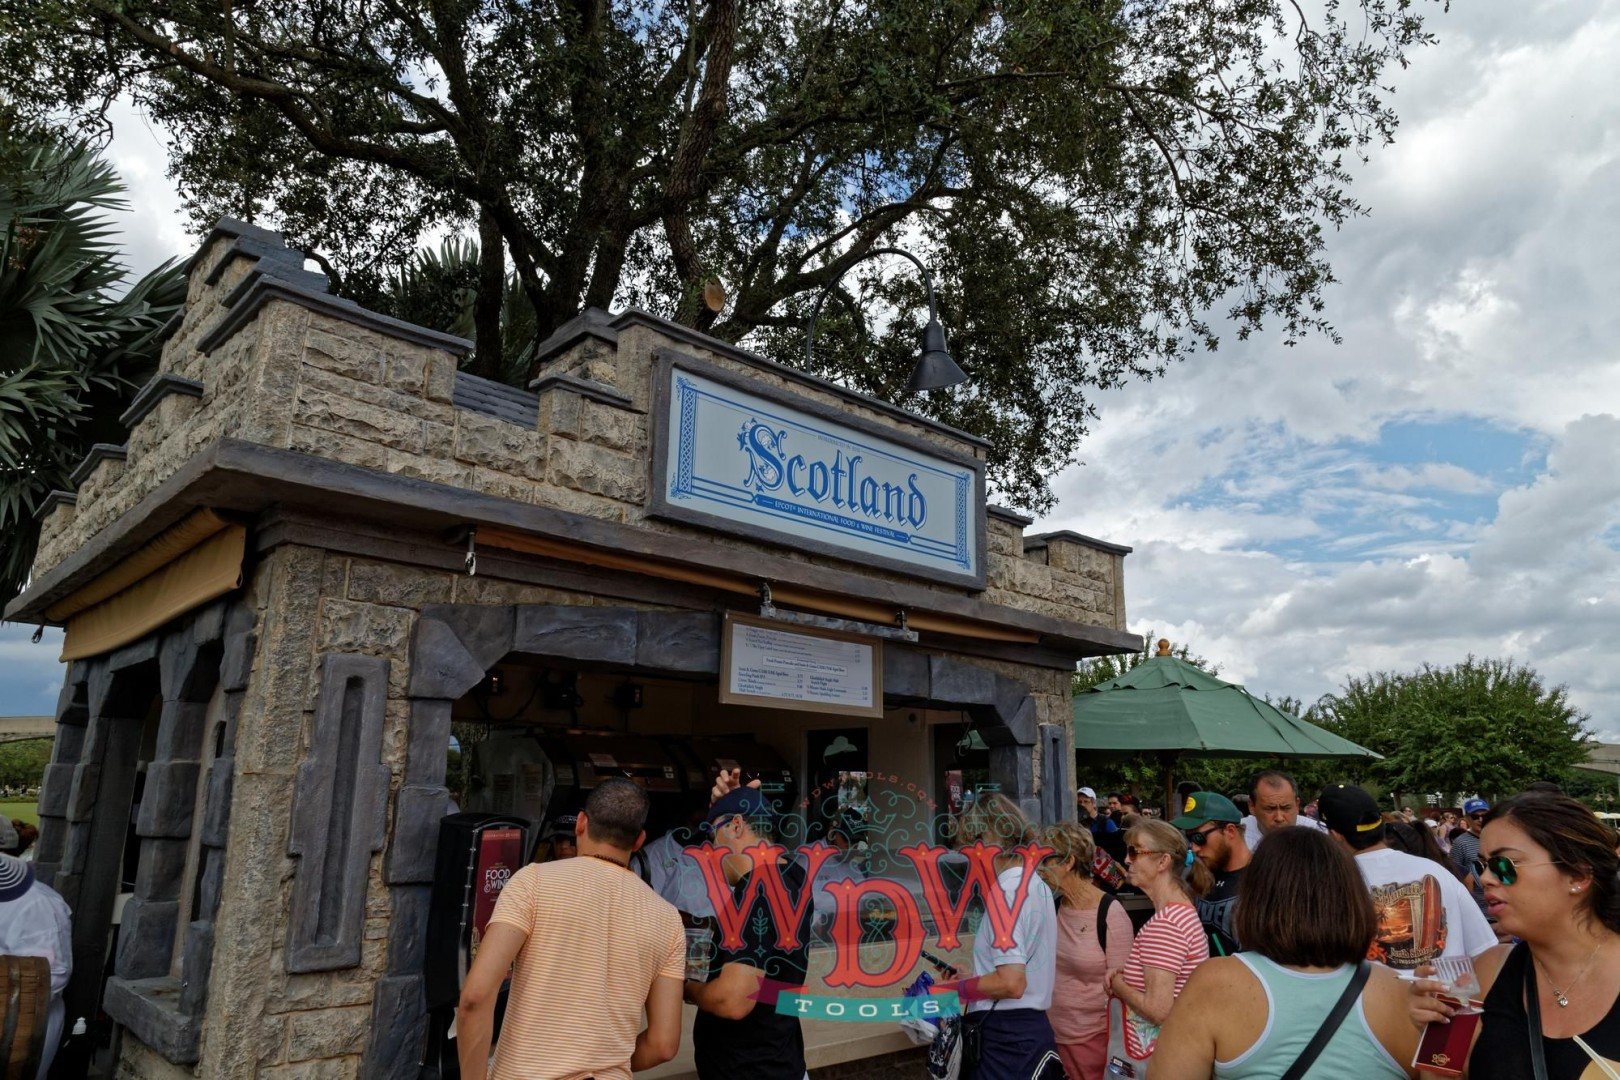 Scotland booth at Epcot's Food and Wine 2015